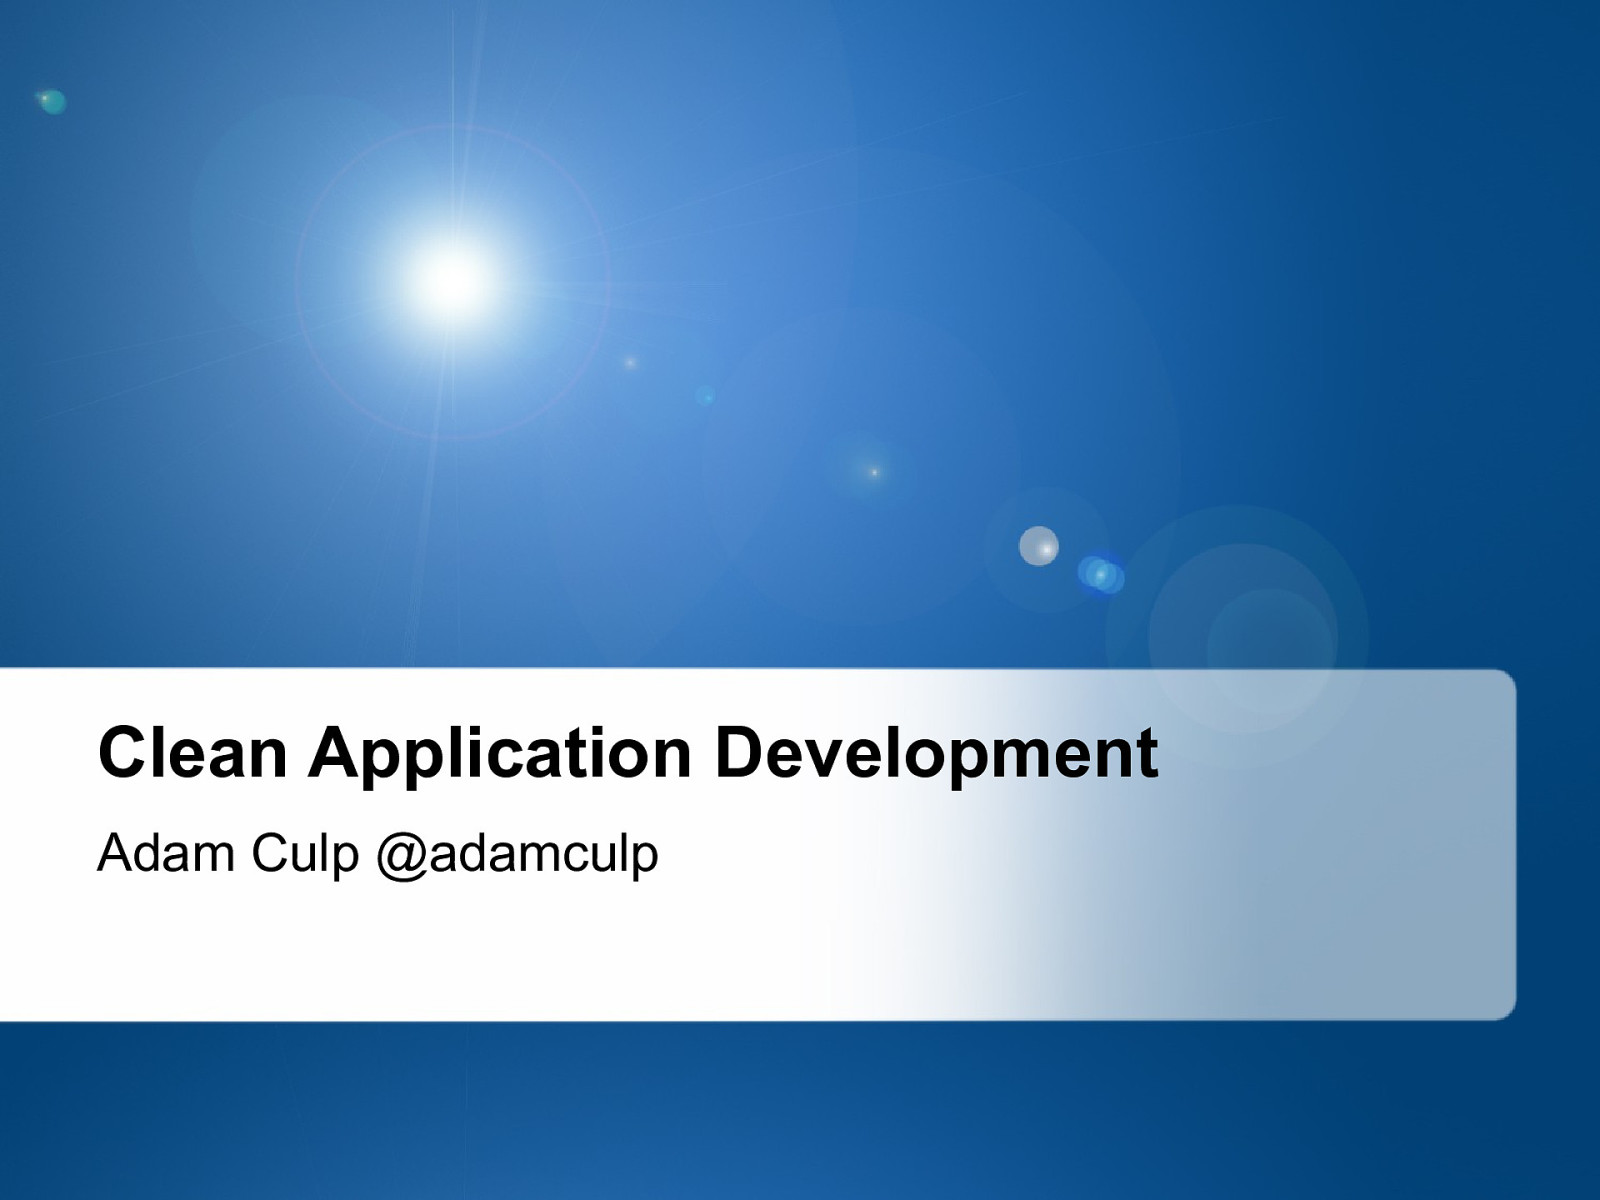 Clean Application Development